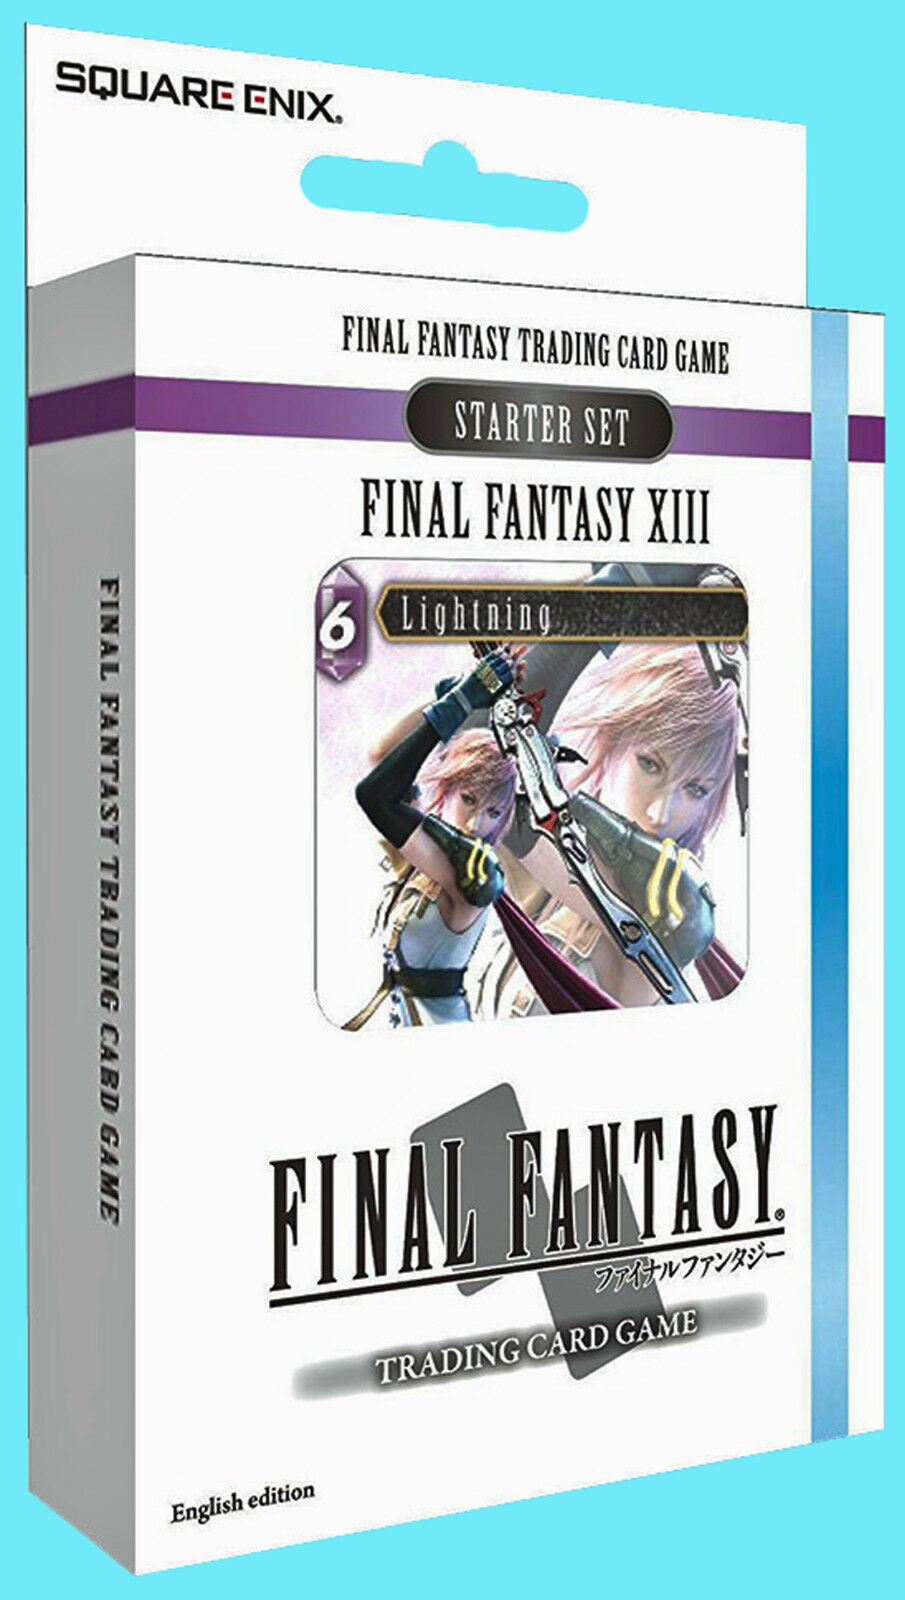 FINAL FANTASY XIII TRADING CARD GAME STARTER DECK Ice /& Lightning NEW TCG Opus I